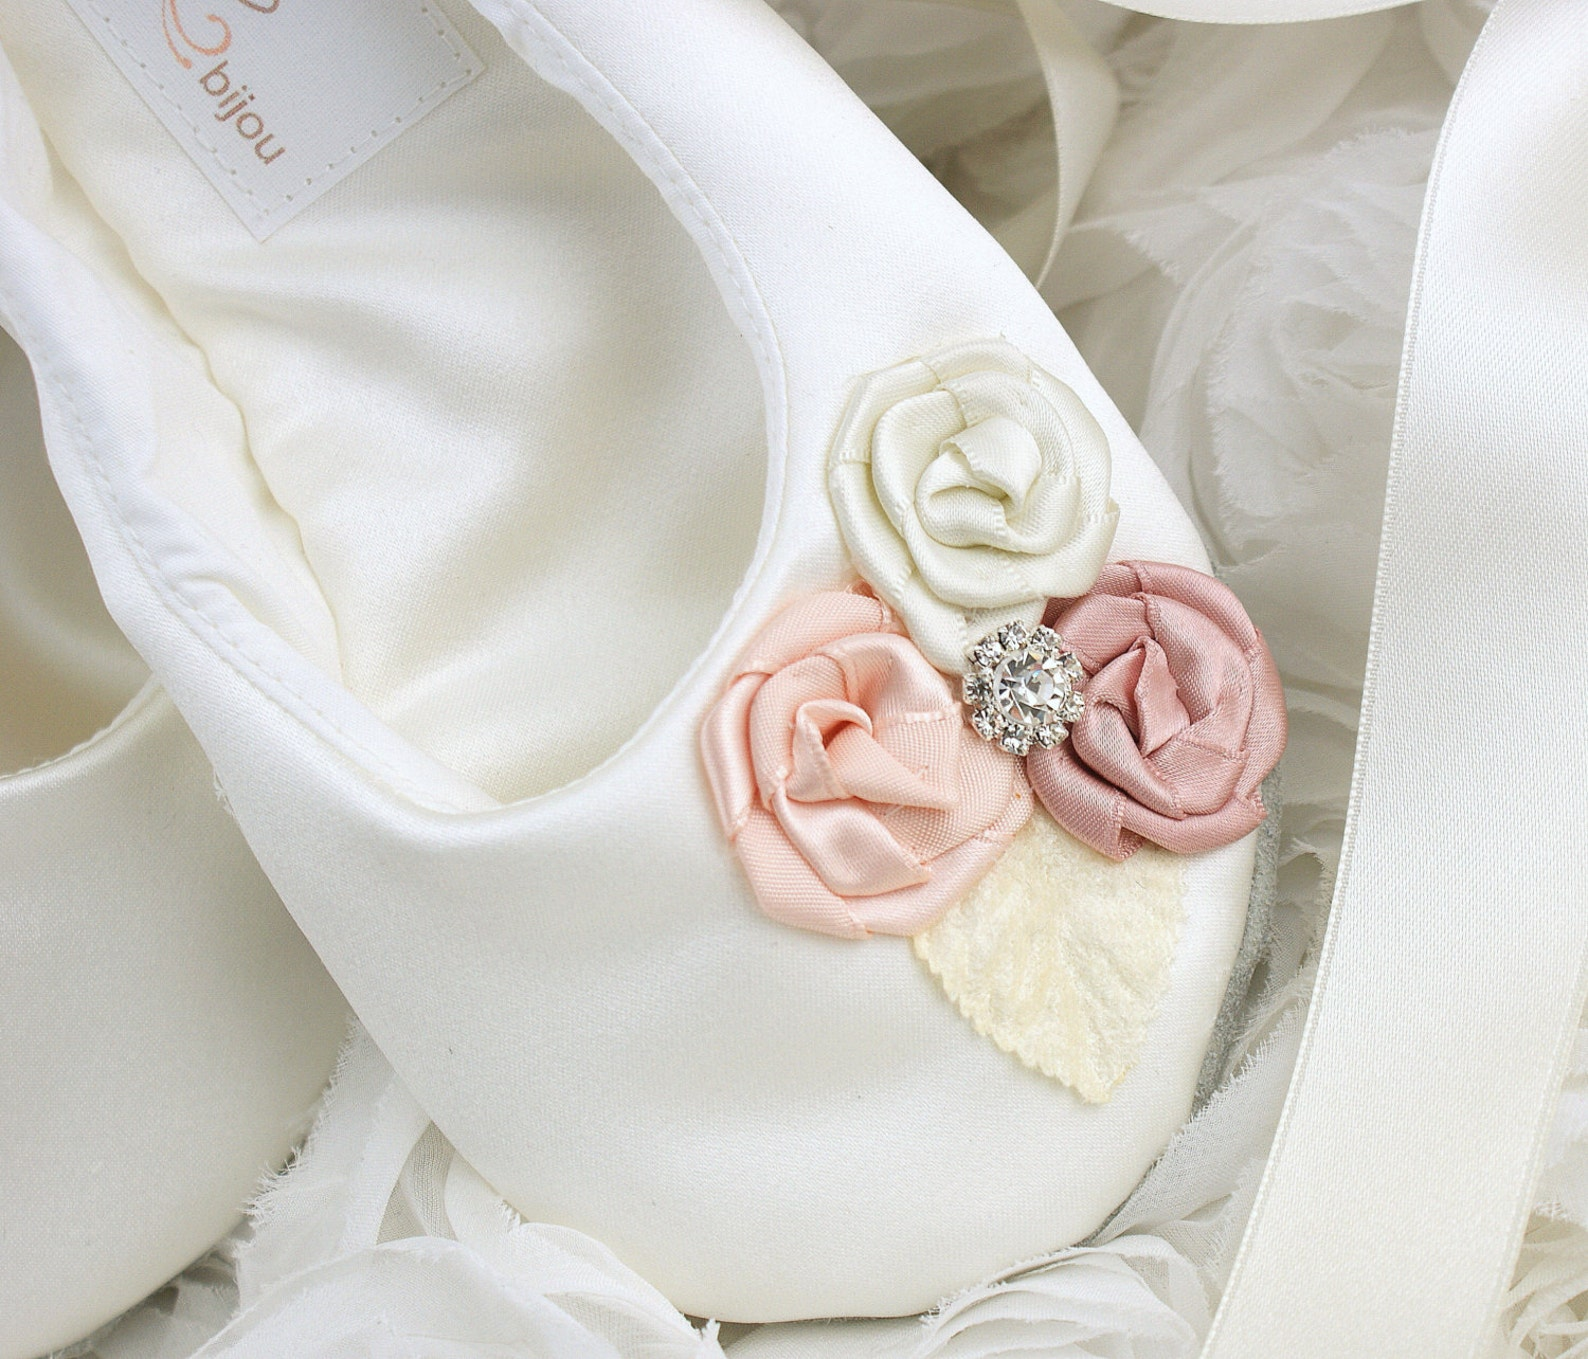 ivory ballet shoes, blush, cream, pink, wedding shoes, bridal ballet slippers shoes, satin bridal flats, flats with flowers